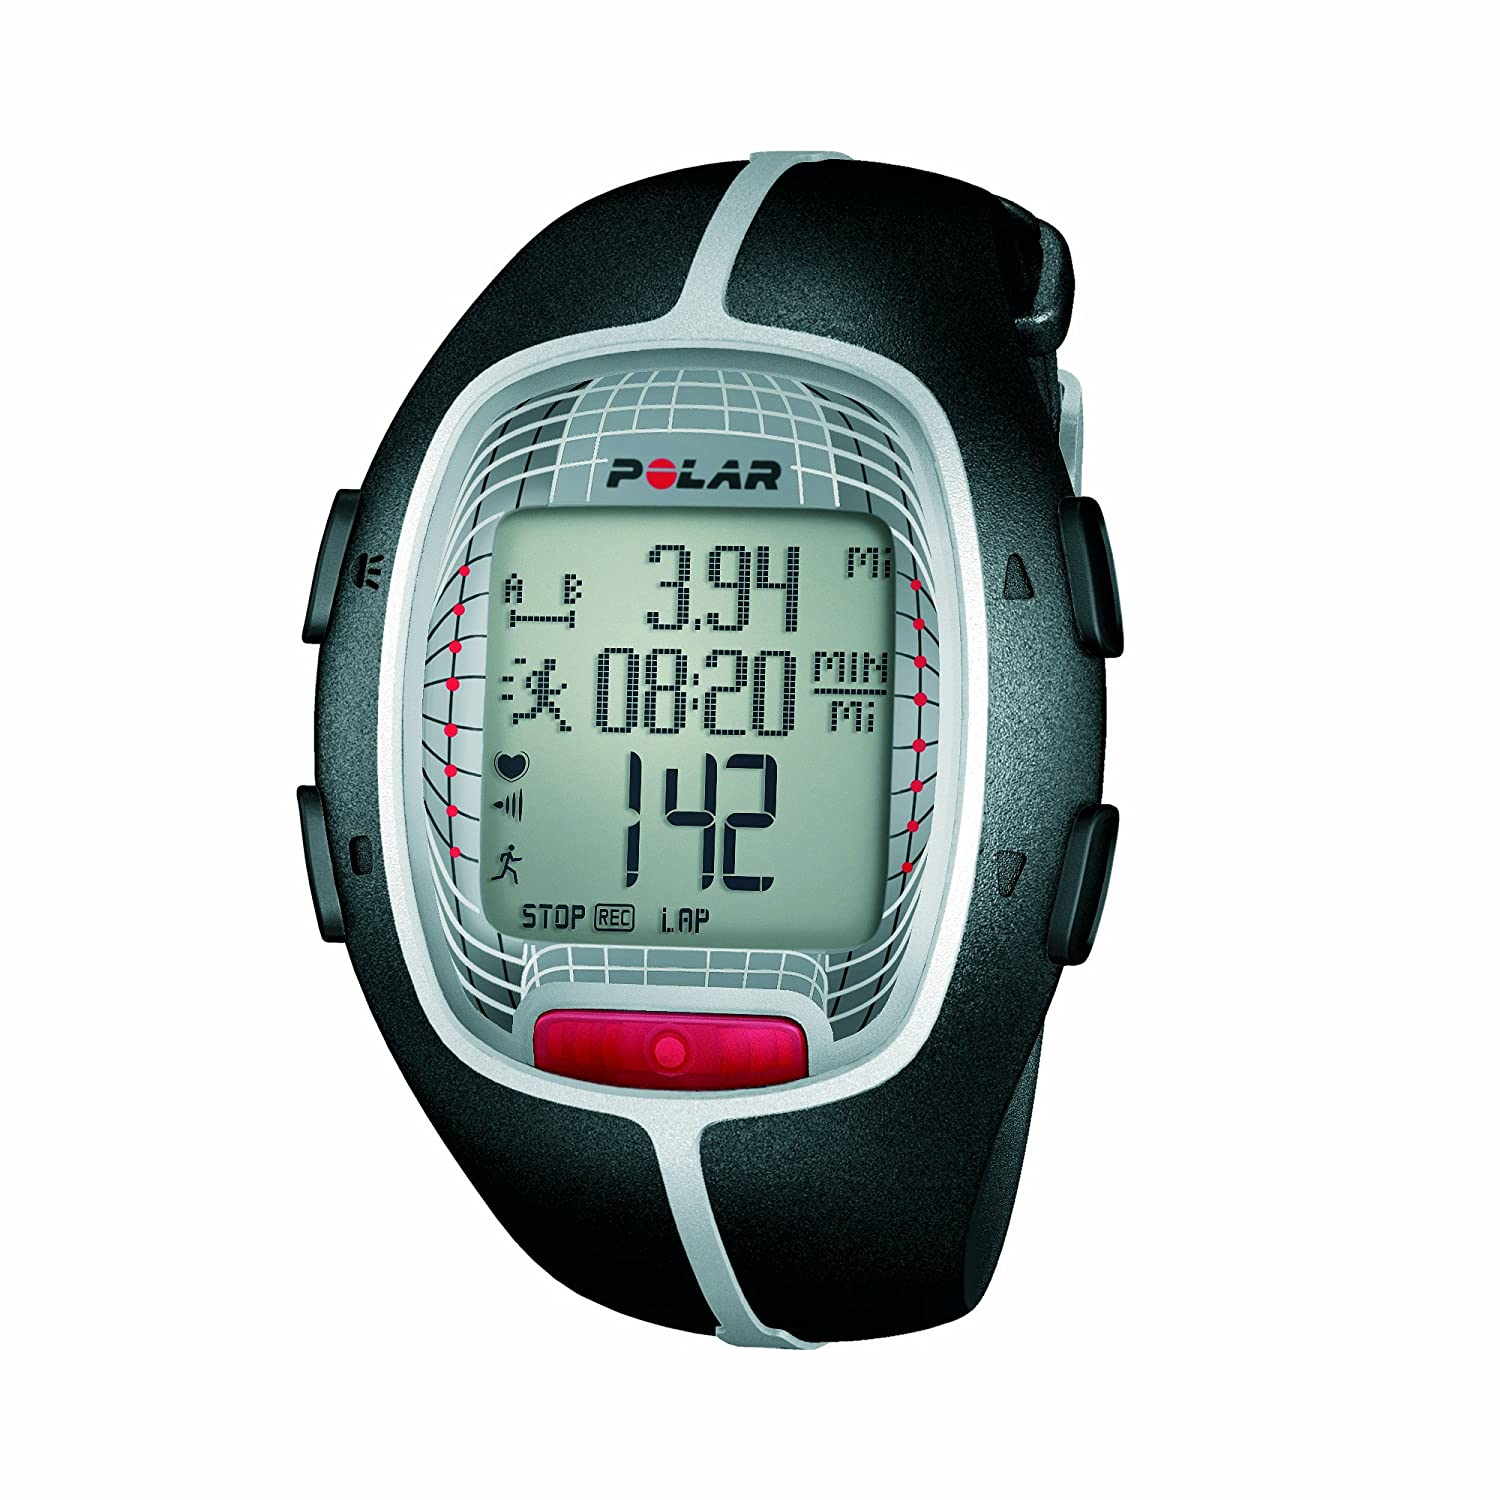 Polar RS300X Heart Rate Monitor at Amazon.com